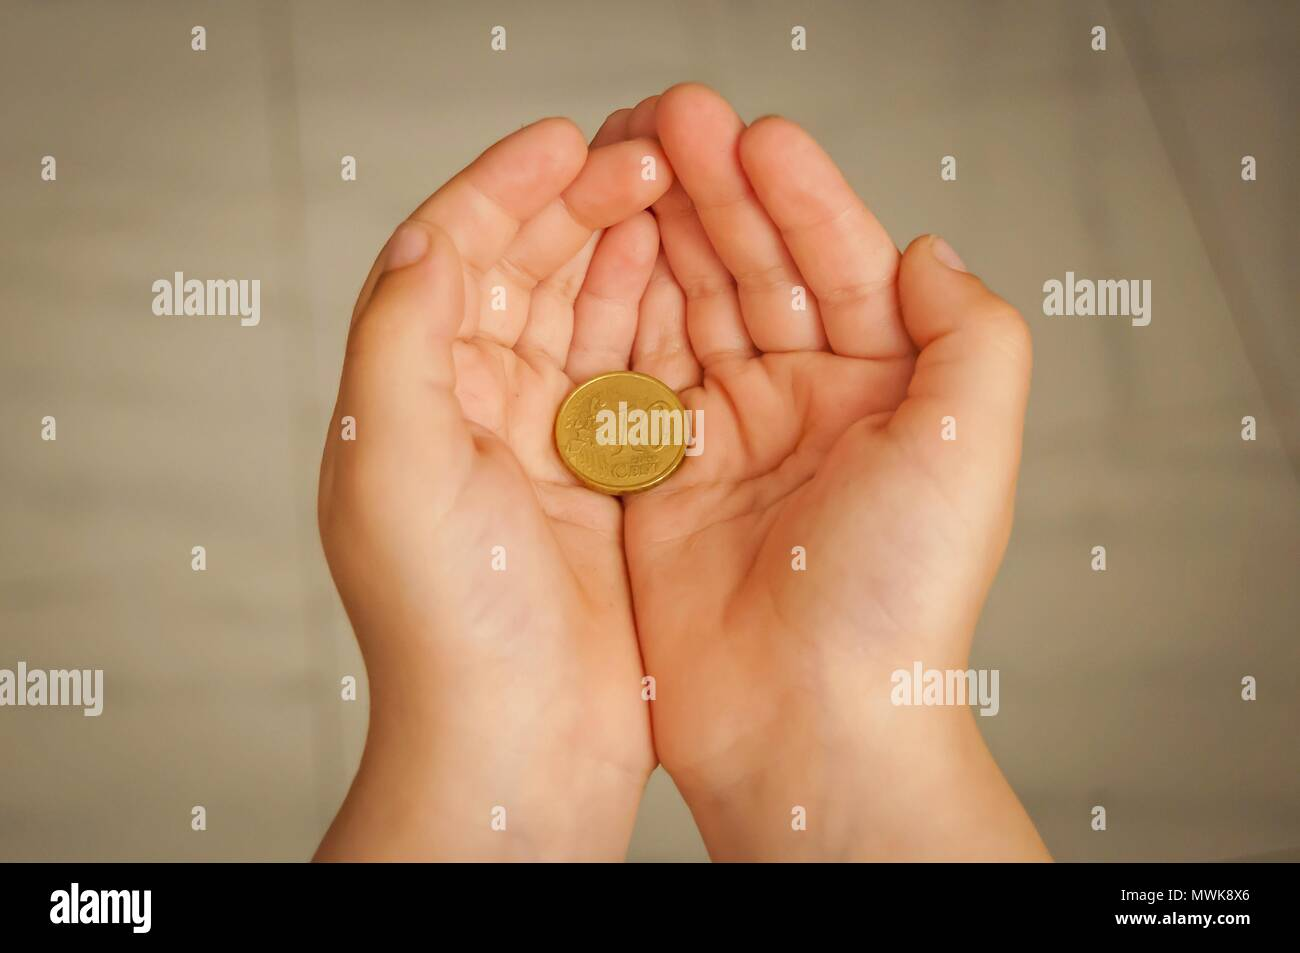 Child holding ten euro cents coin in his hands. Pocket money concept, first money earned stock image. - Stock Image